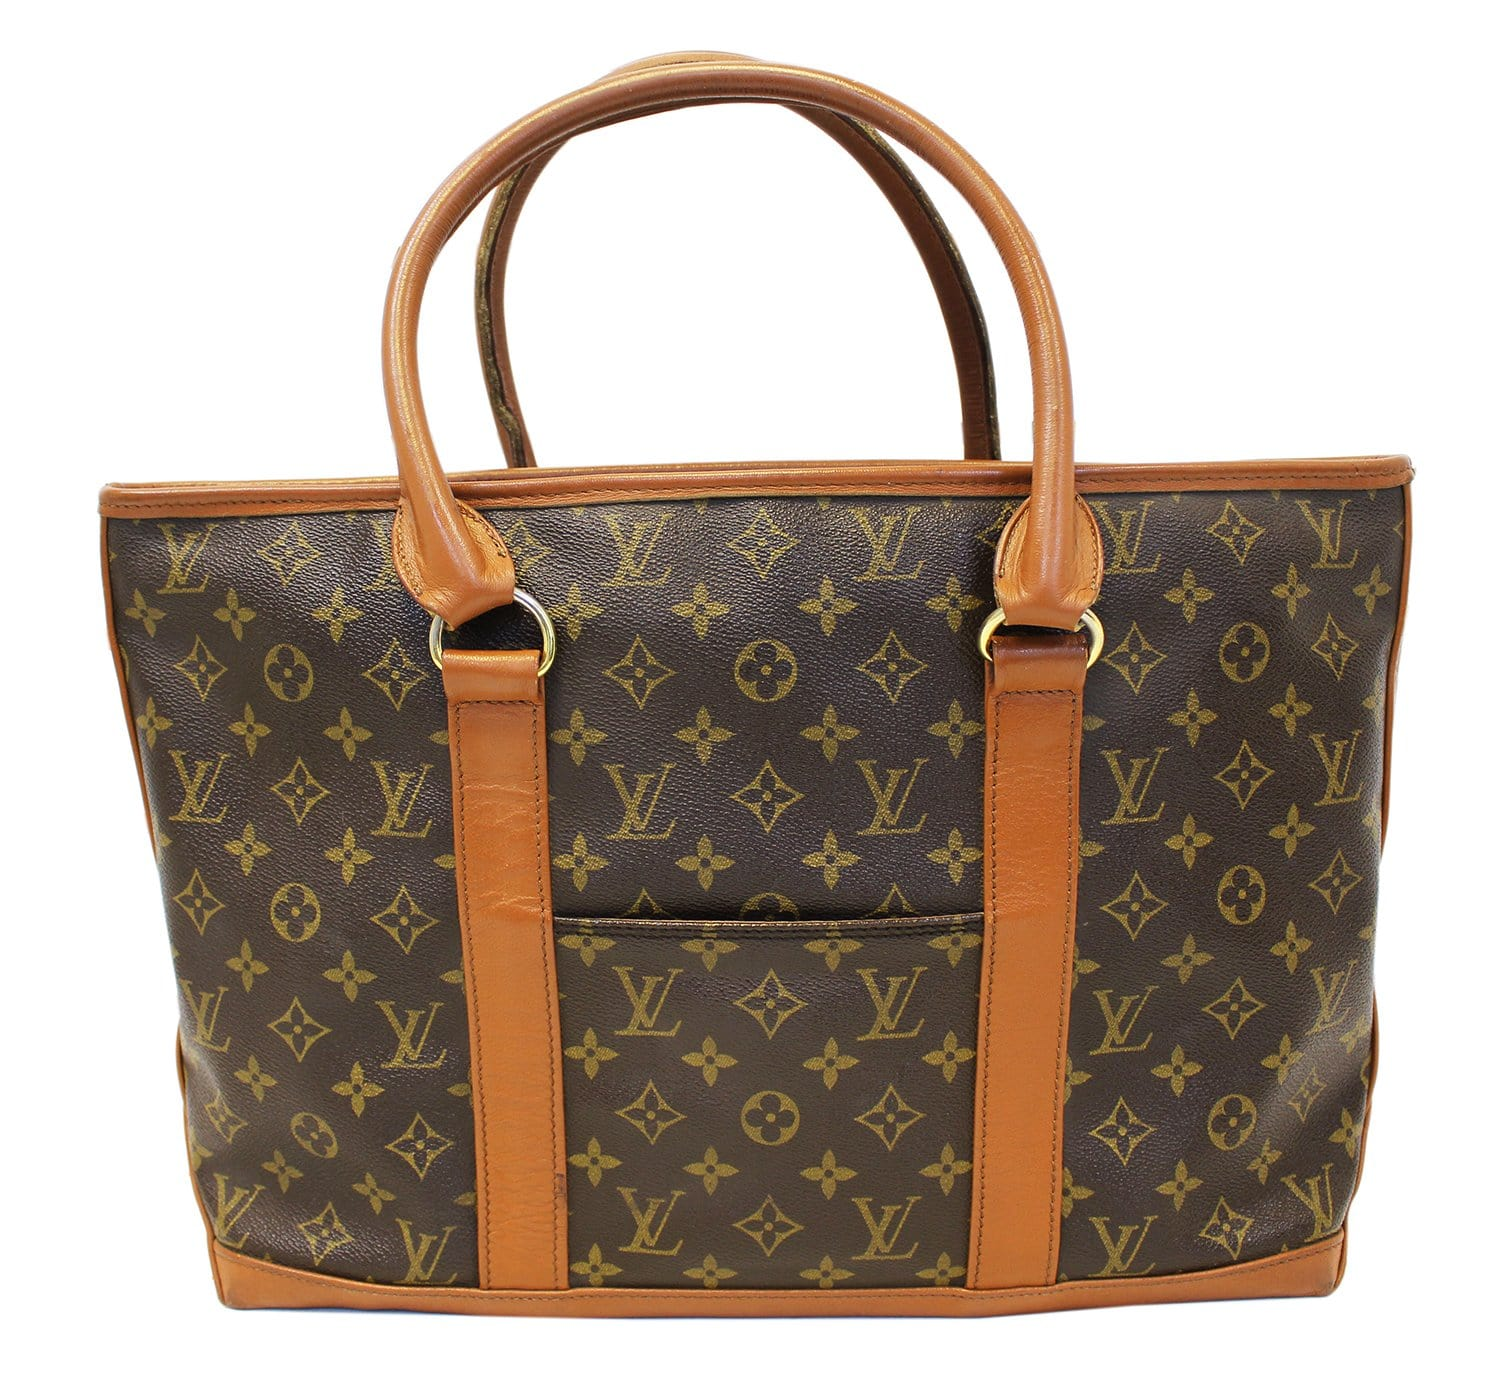 c4b2ca6e5394 LOUIS VUITTON Monogram Sac Weekend PM Vintage Tote